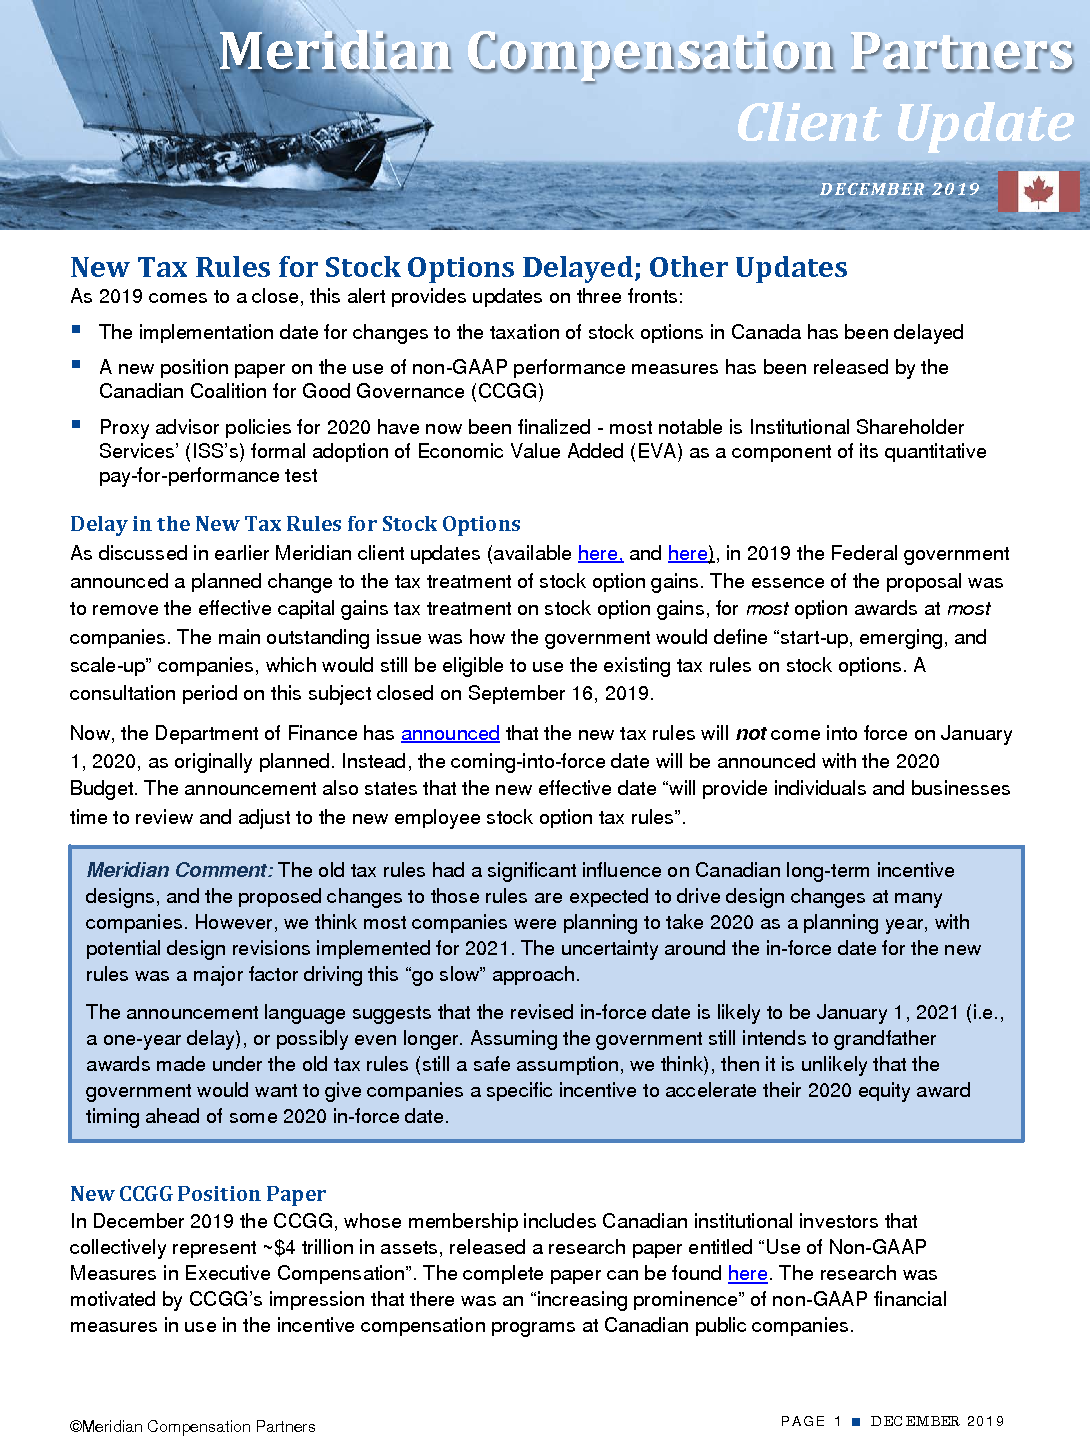 New Tax Rules for Stock Options Delayed; Other Updates (PDF)